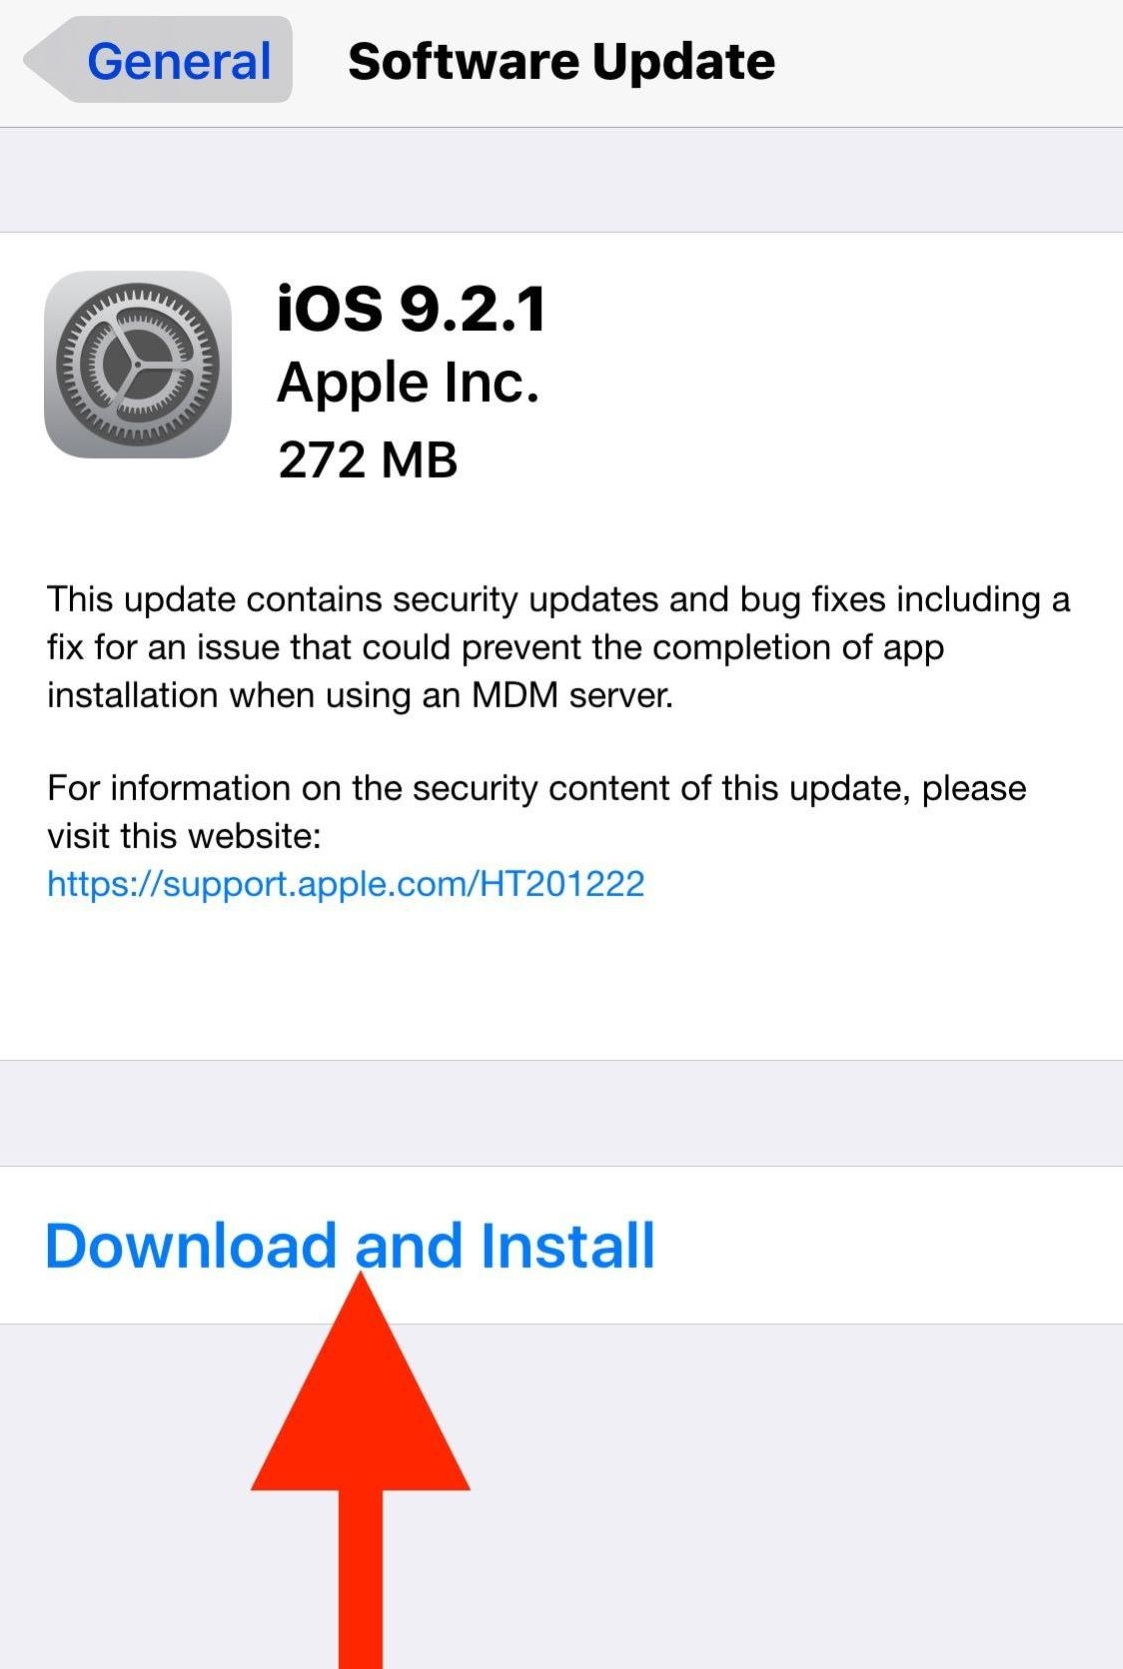 Download and Install iOS updates on iPhone